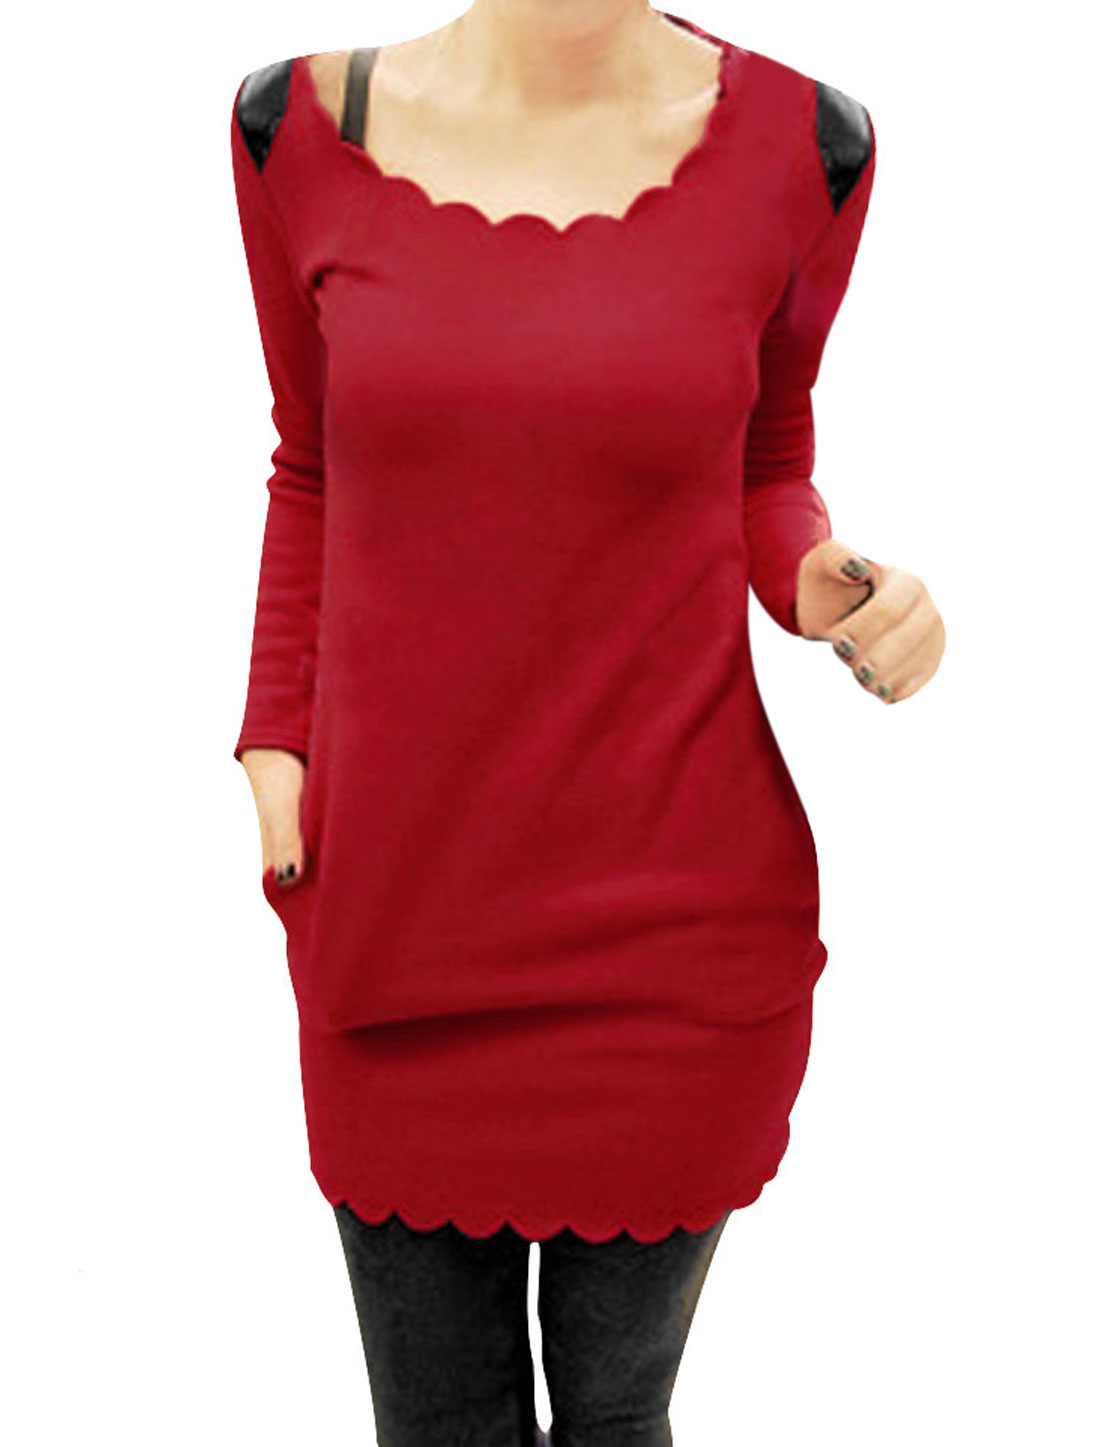 Ladies Red Side Pockets Autumn Stylish Tunic Shirt XS